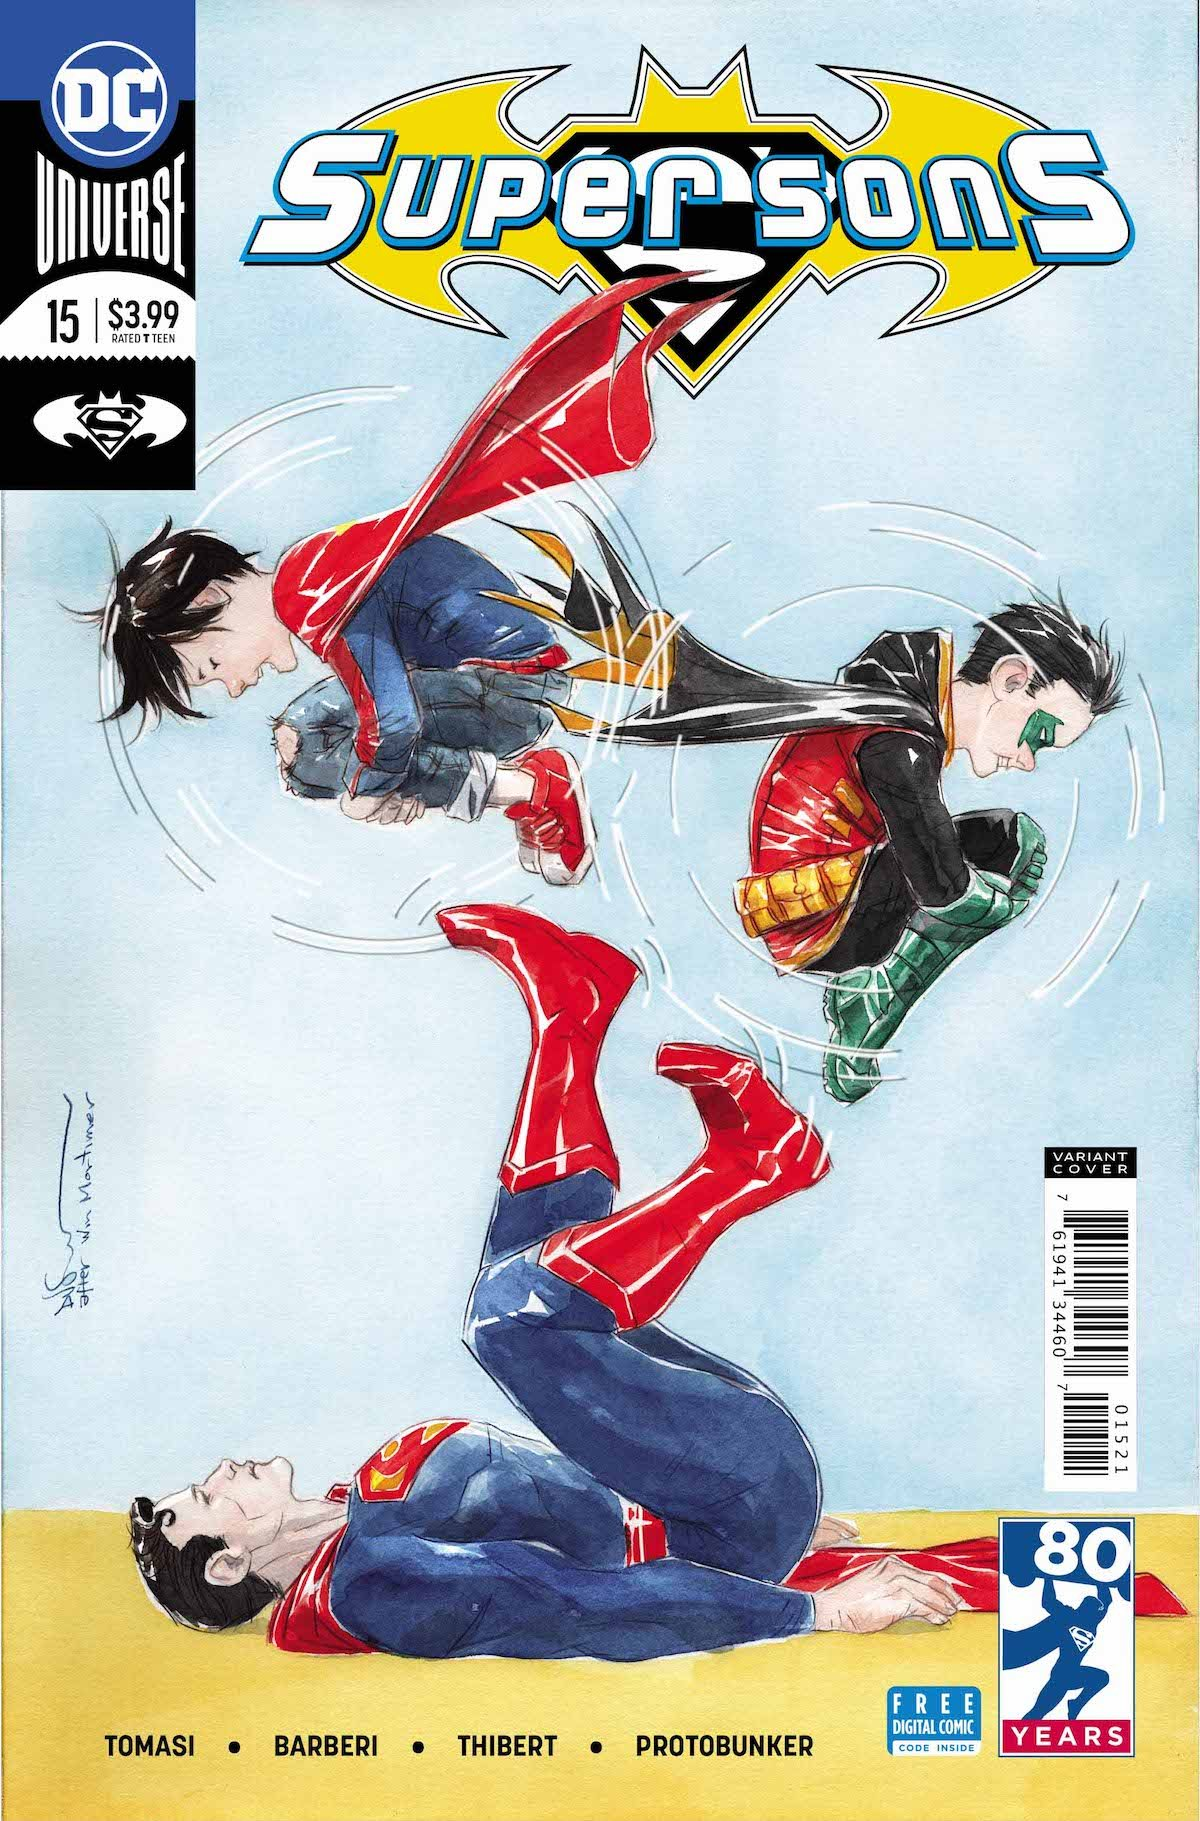 Super-Sons #15 variant cover